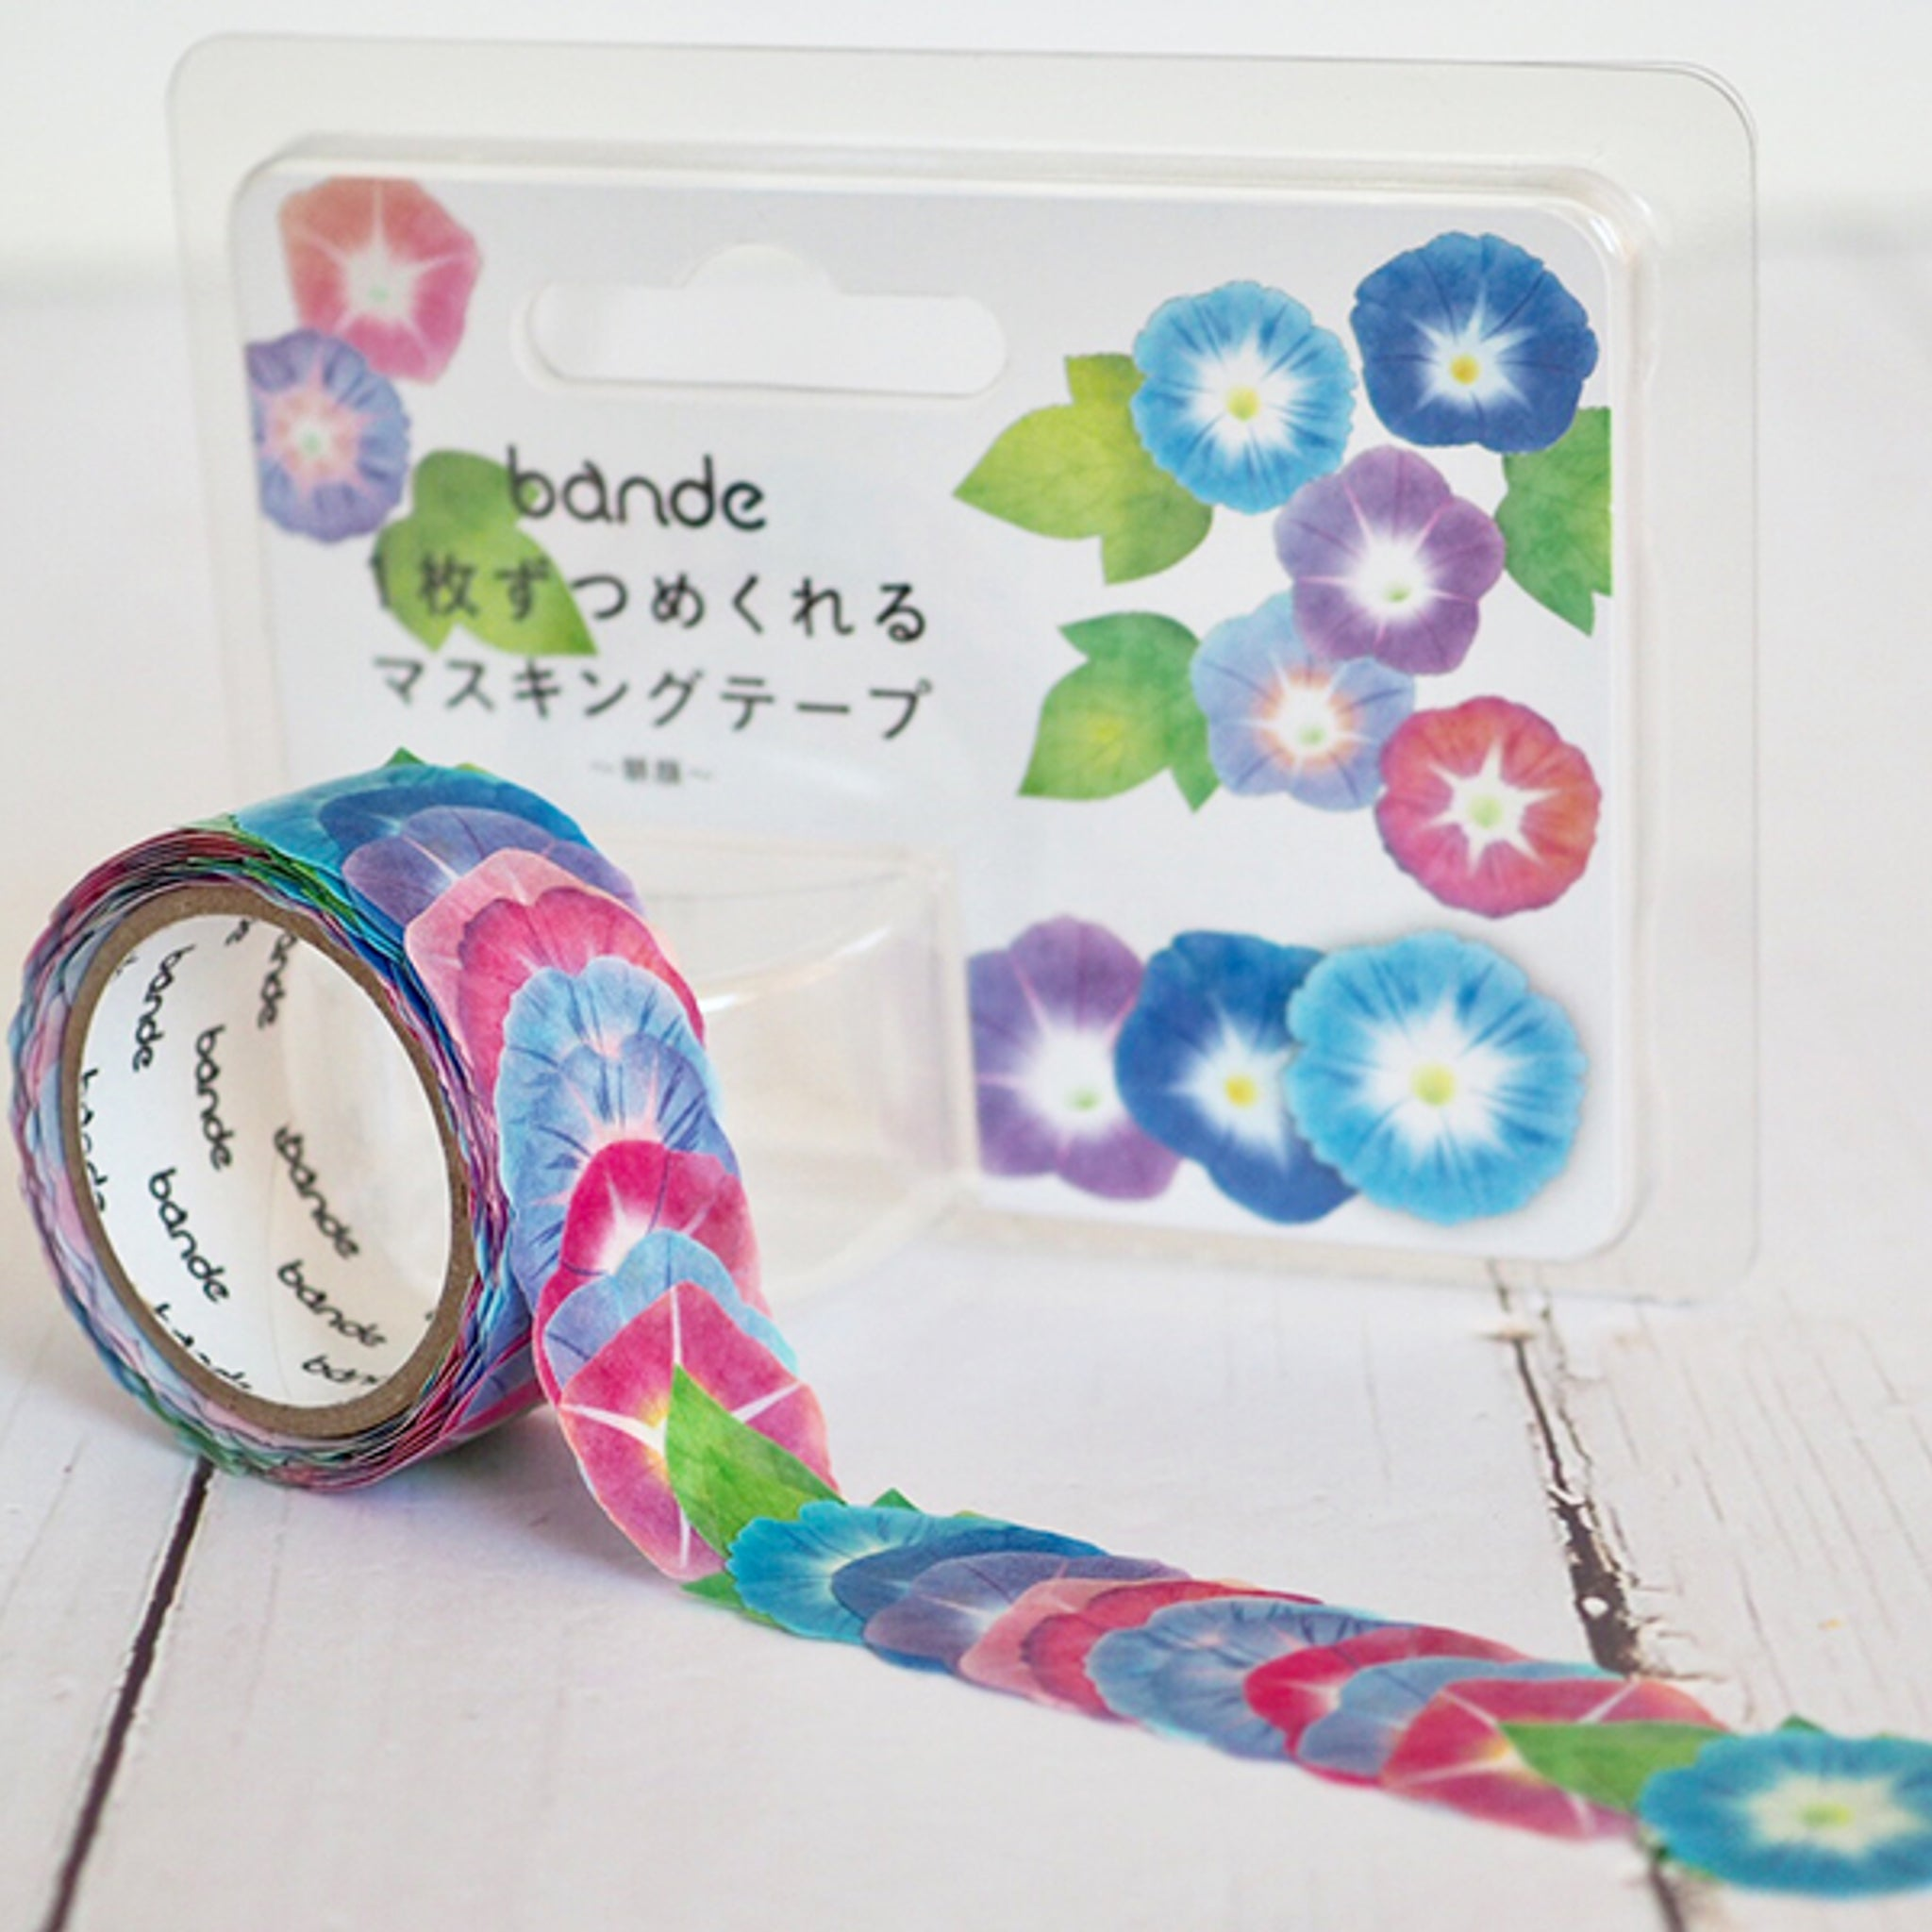 Bande Morning Glory Washi Roll Sticker (Limited Edition)